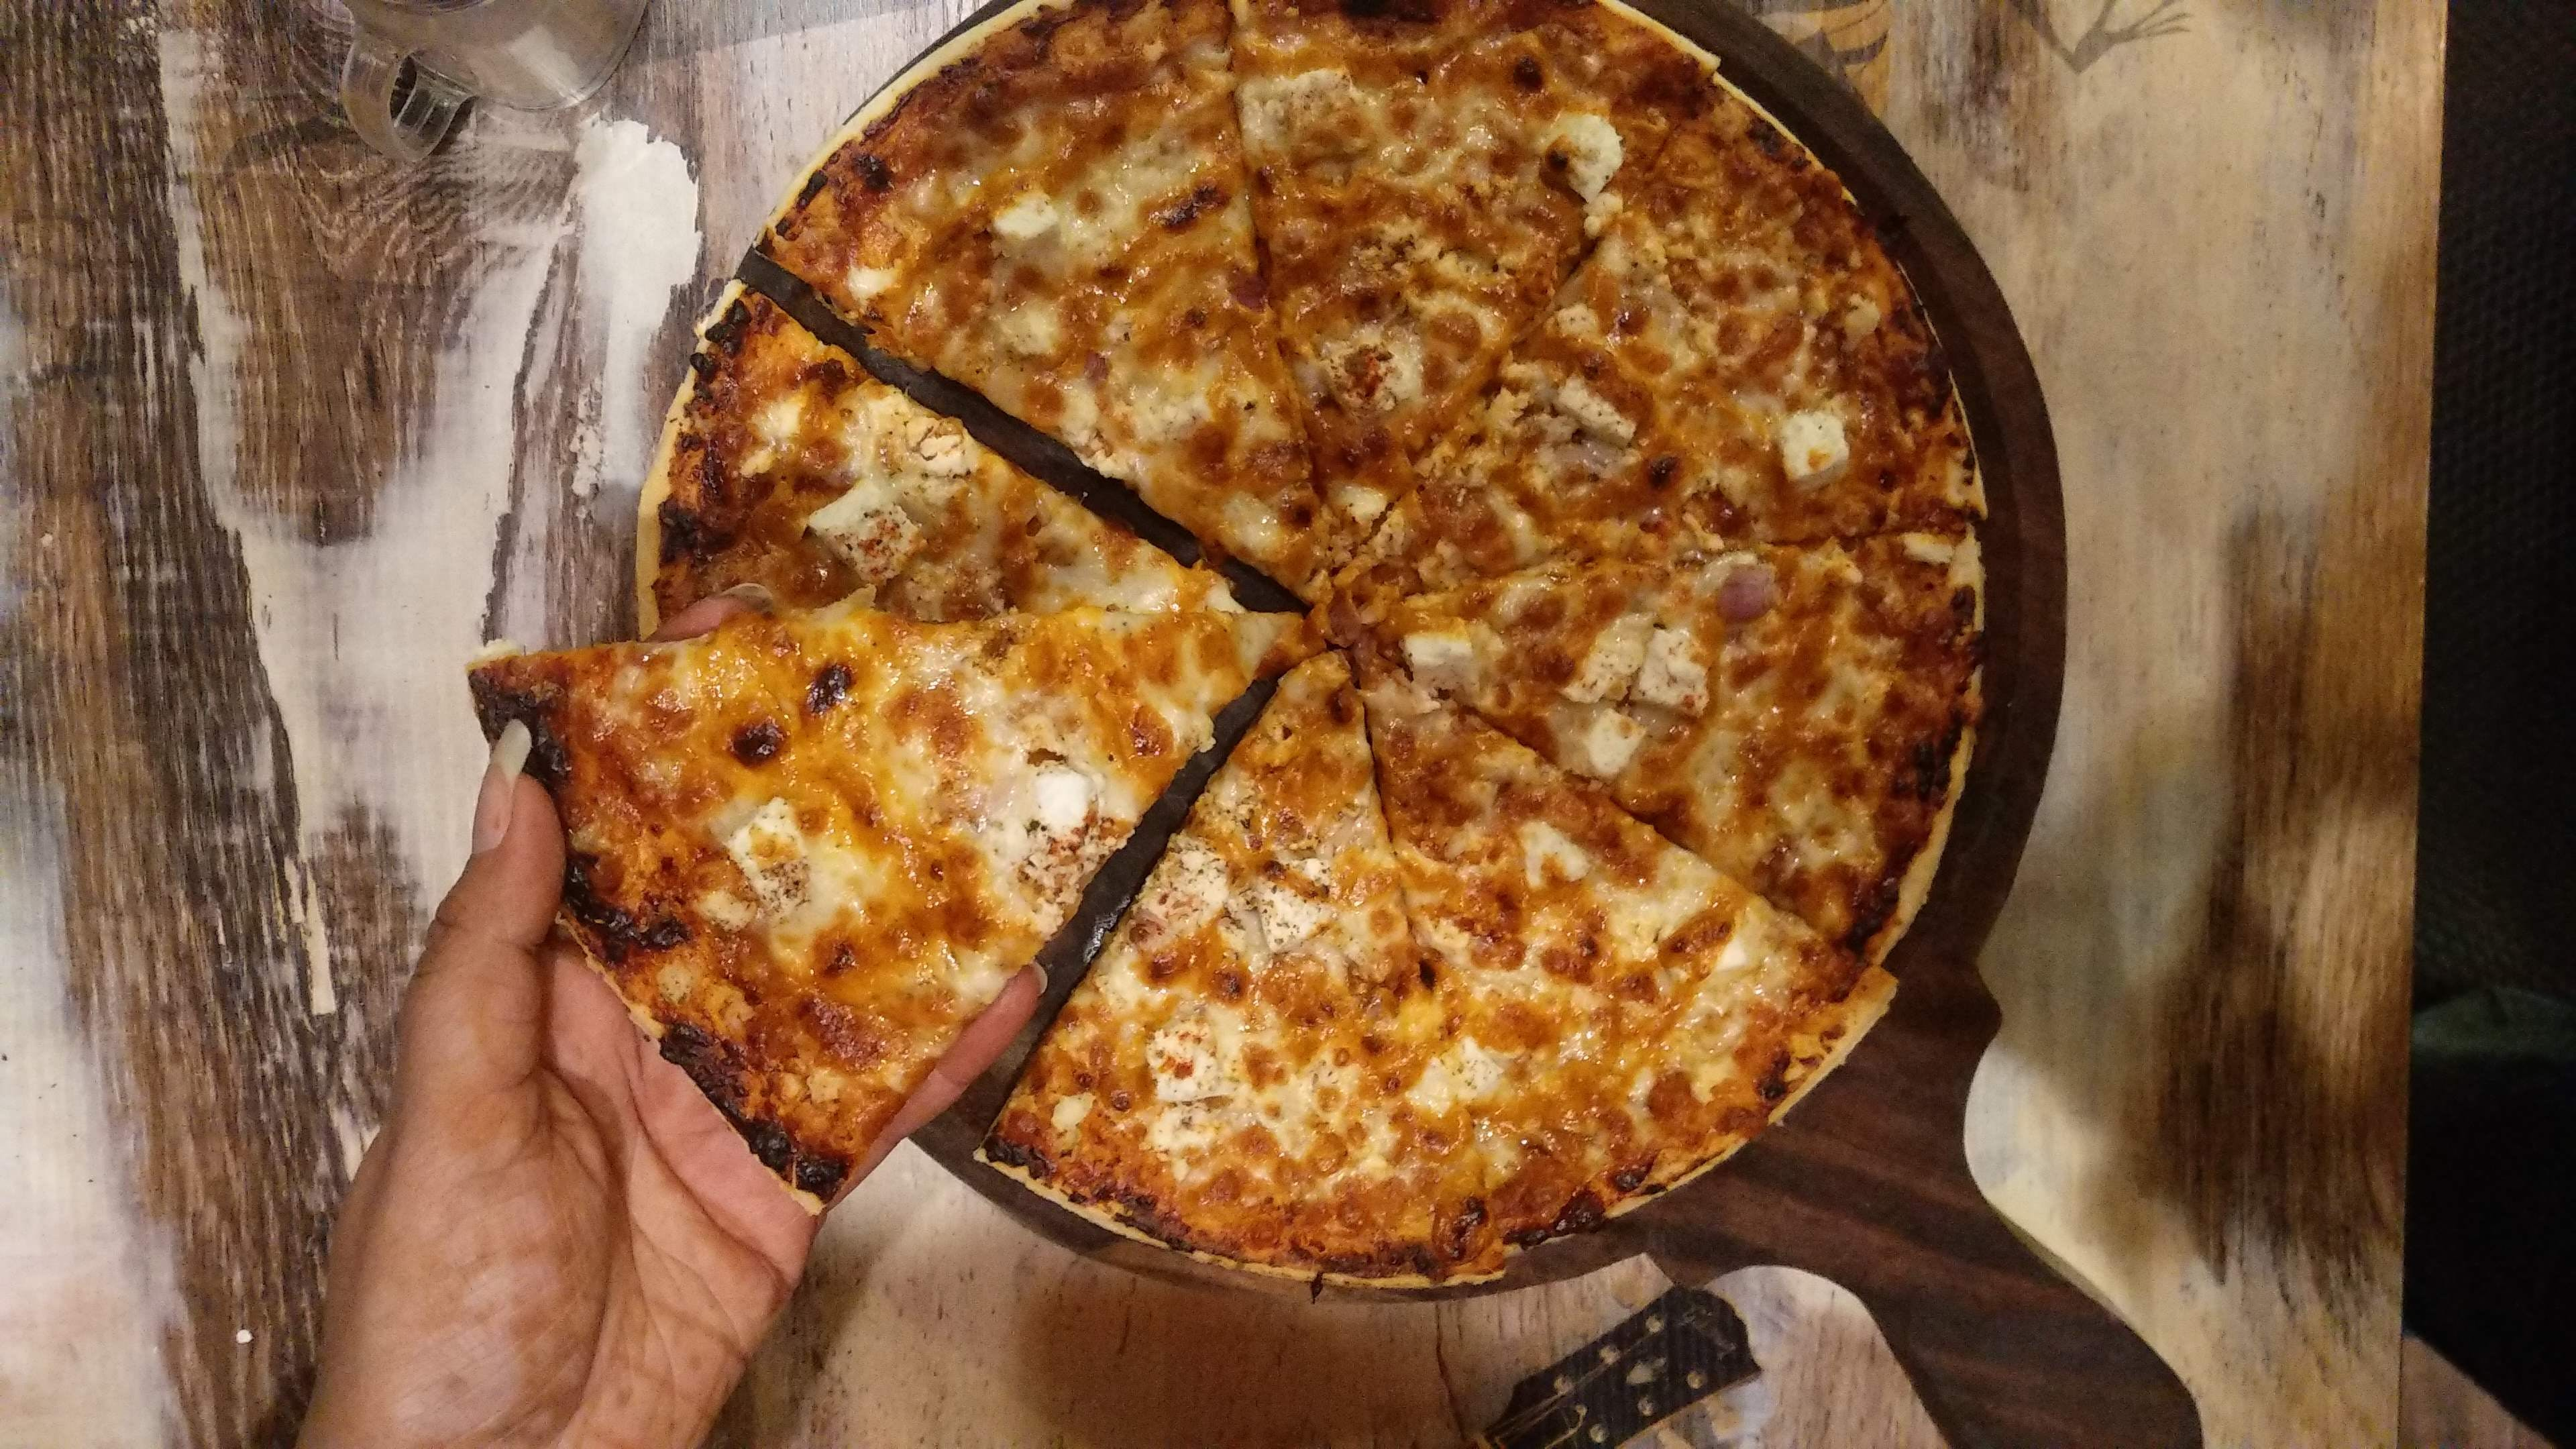 Dish,Food,Cuisine,Pizza cheese,Ingredient,Junk food,Pizza,Frico,Baked goods,Flamiche